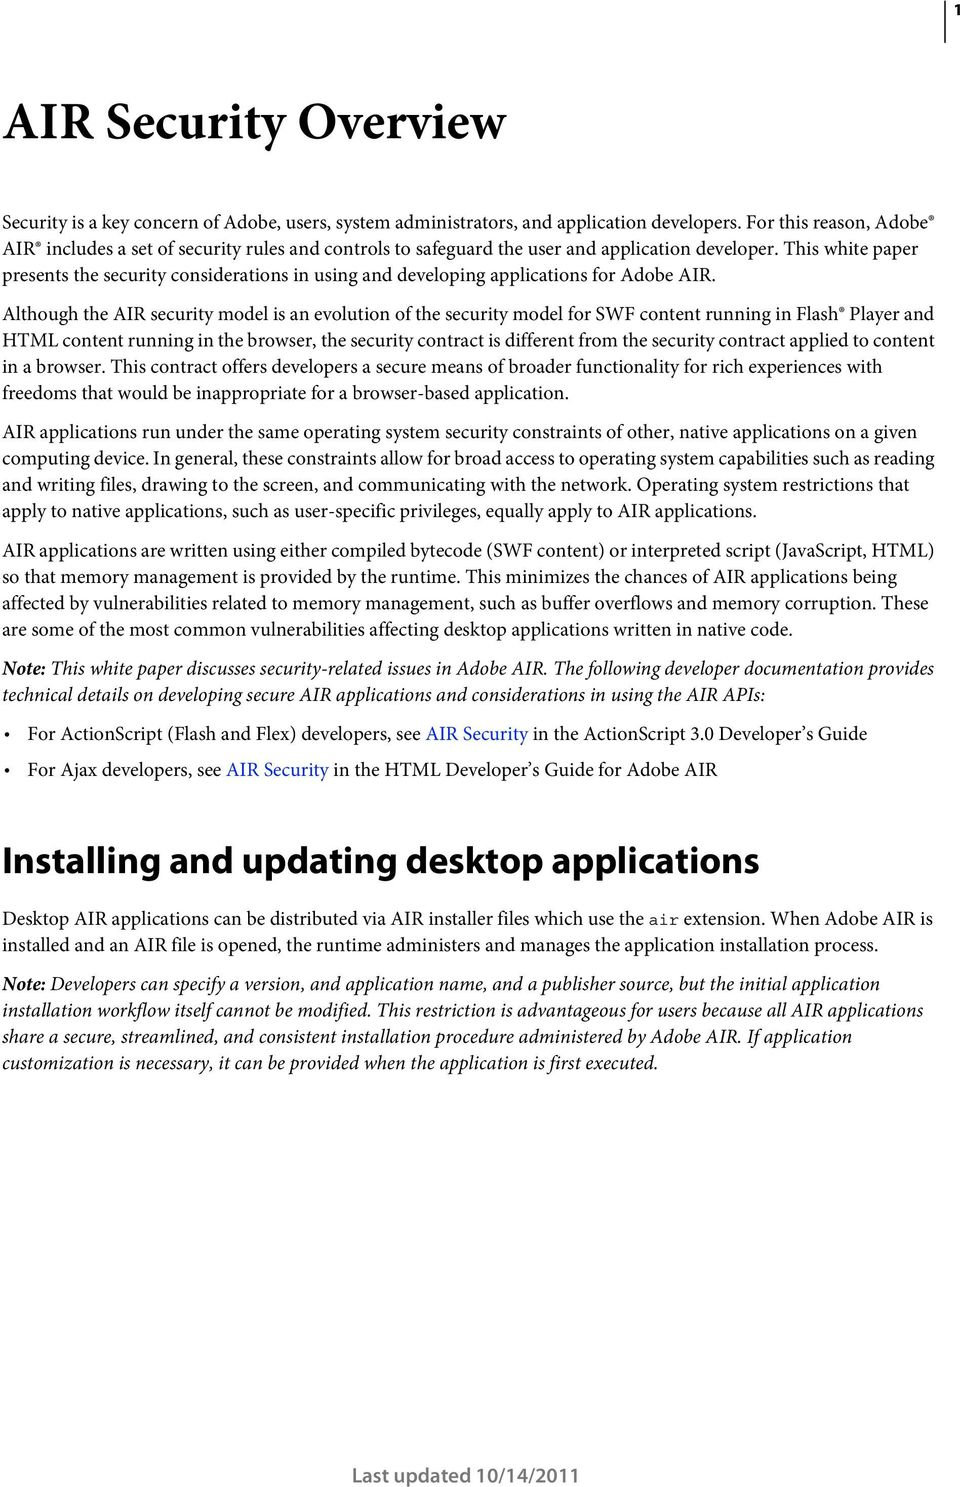 This white paper presents the security considerations in using and developing applications for Adobe AIR.